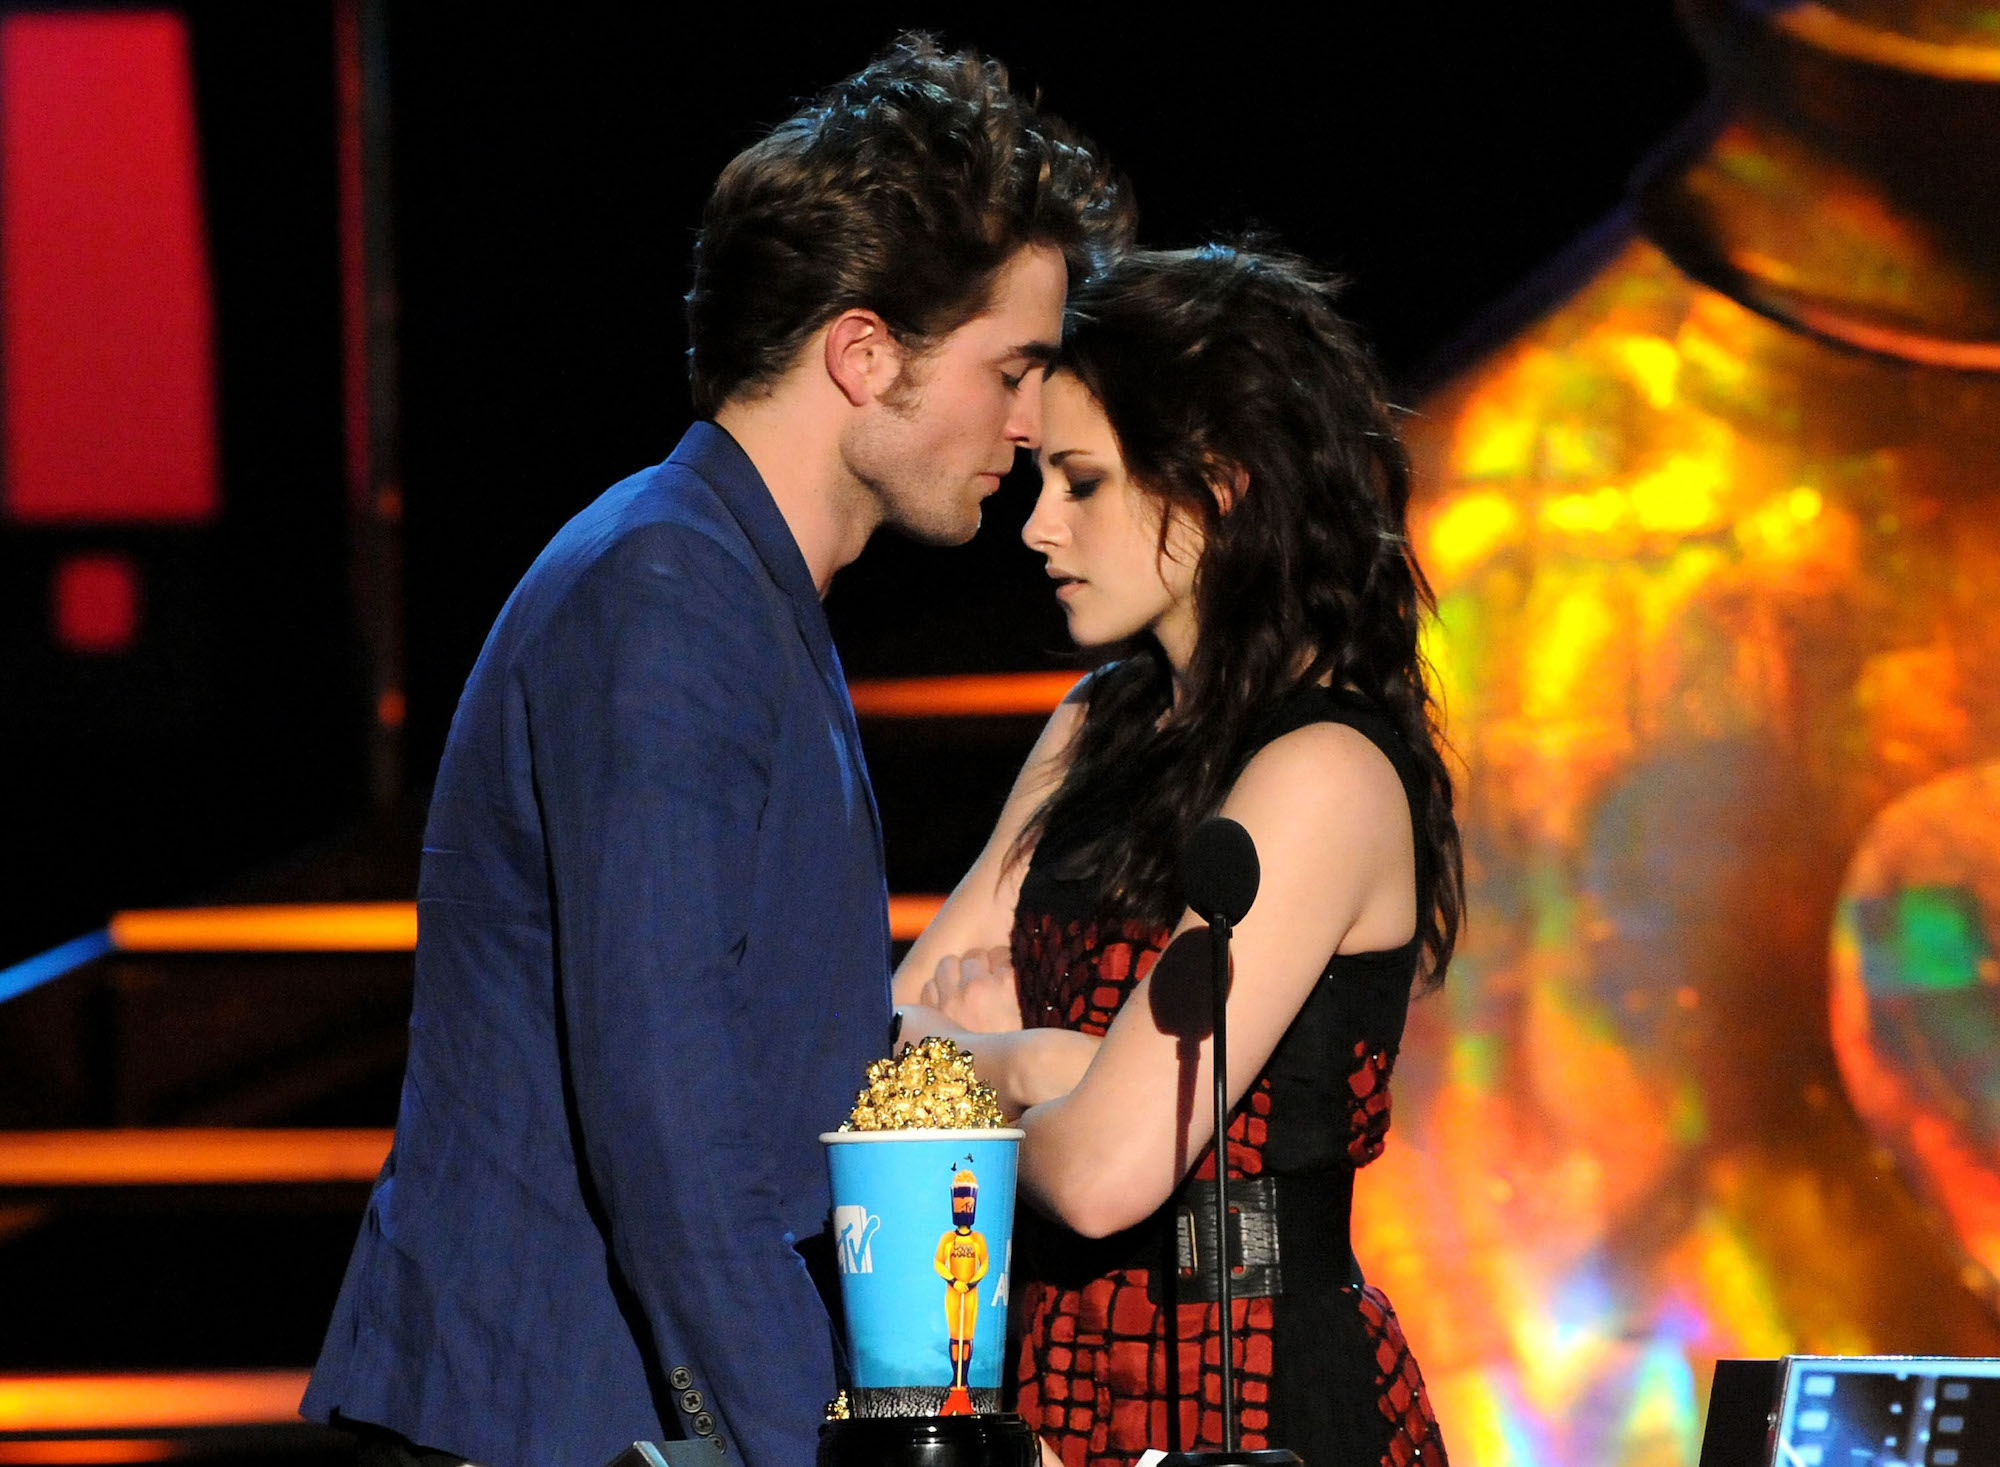 Robert Pattinson and Kristen Stewart onstage during the 2009 MTV Movie Awards on May 31, 2009.